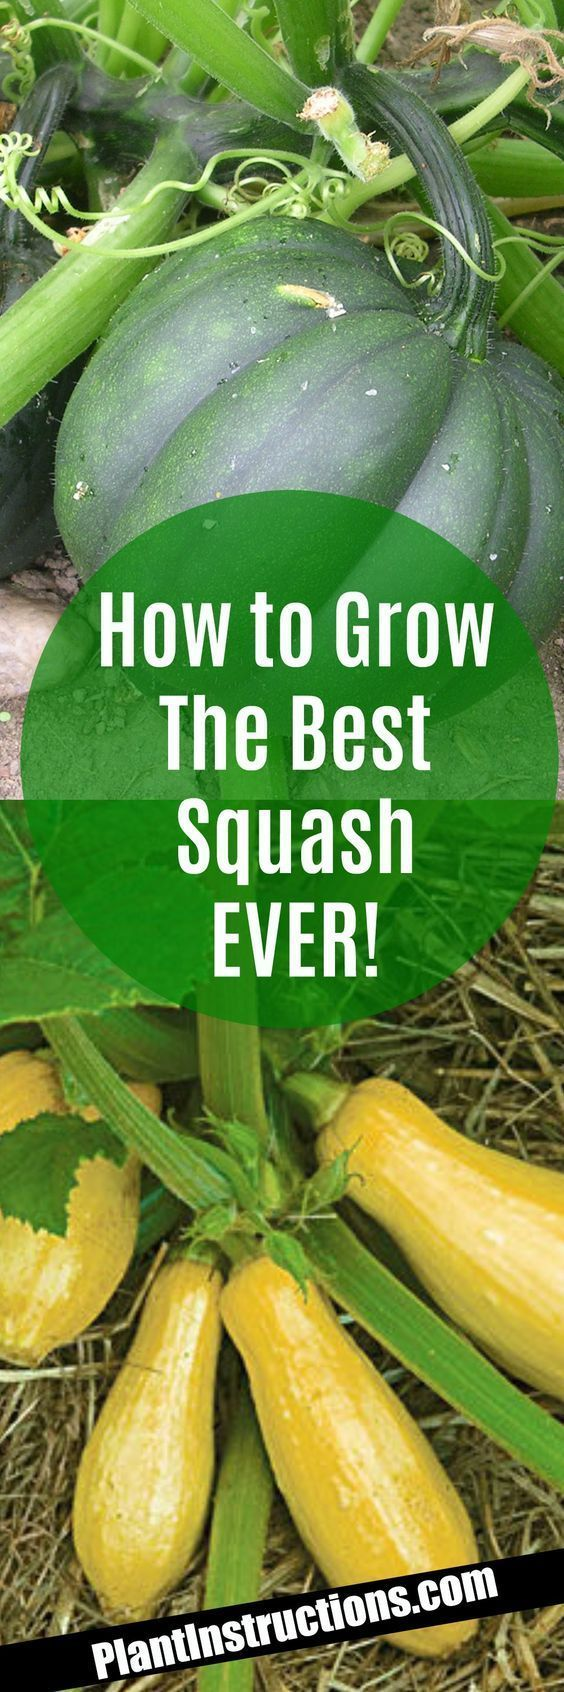 How to Grow Squash #smallspacegardening #OrganicGardening